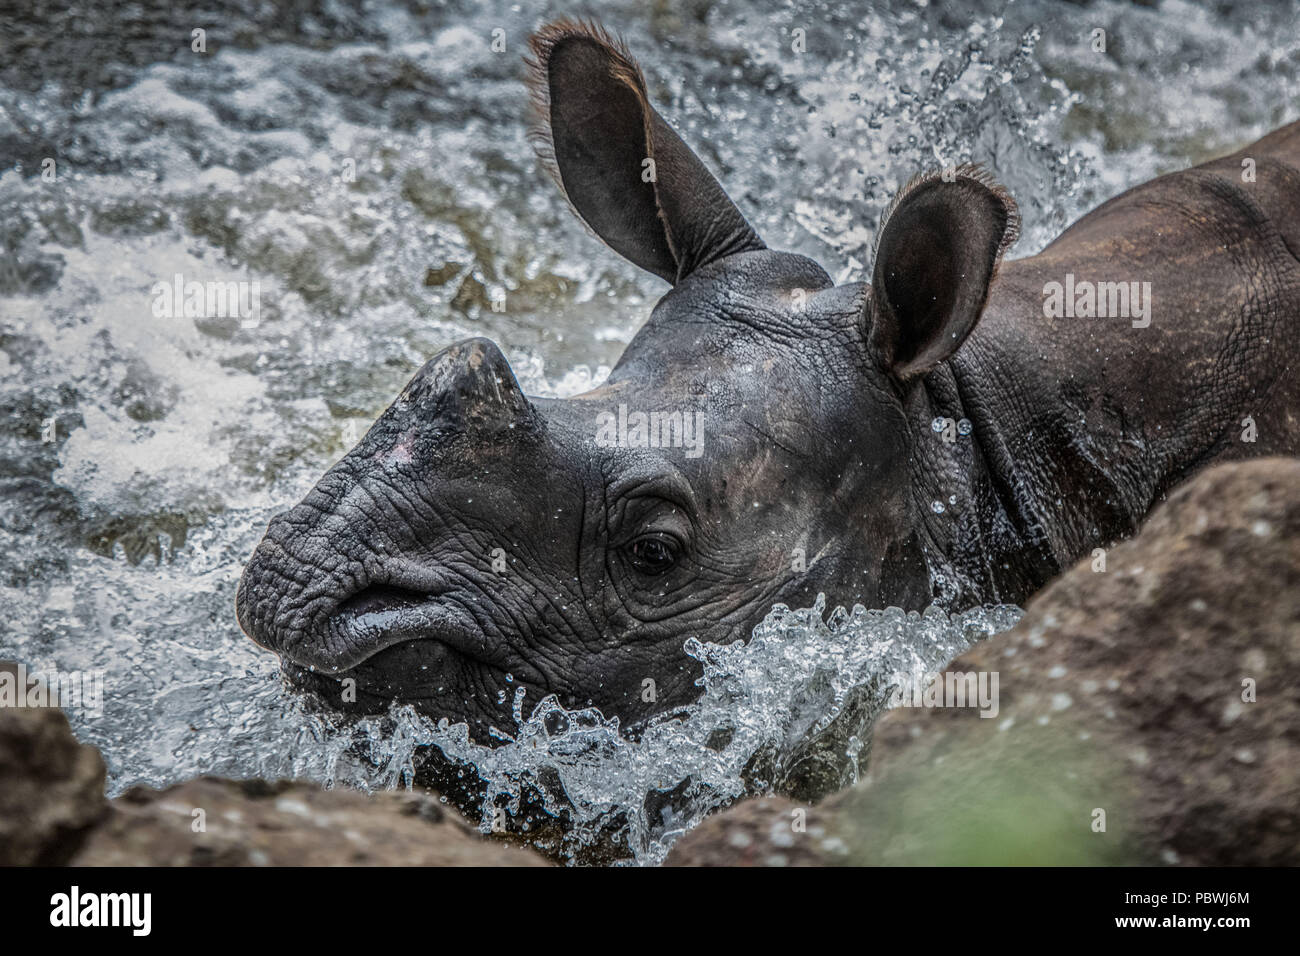 Edinburgh, UK    July  30 2018; A  young greater one-horned rhinoceros has arrived at RZSS Edinburgh, UK Zoo. Qabid, a two-and-a-half-year-old male around half the size of a fully grown rhino will play vital role in the conservation breeding programme for the species.  credit steven scott taylor / alamy live news Stock Photo